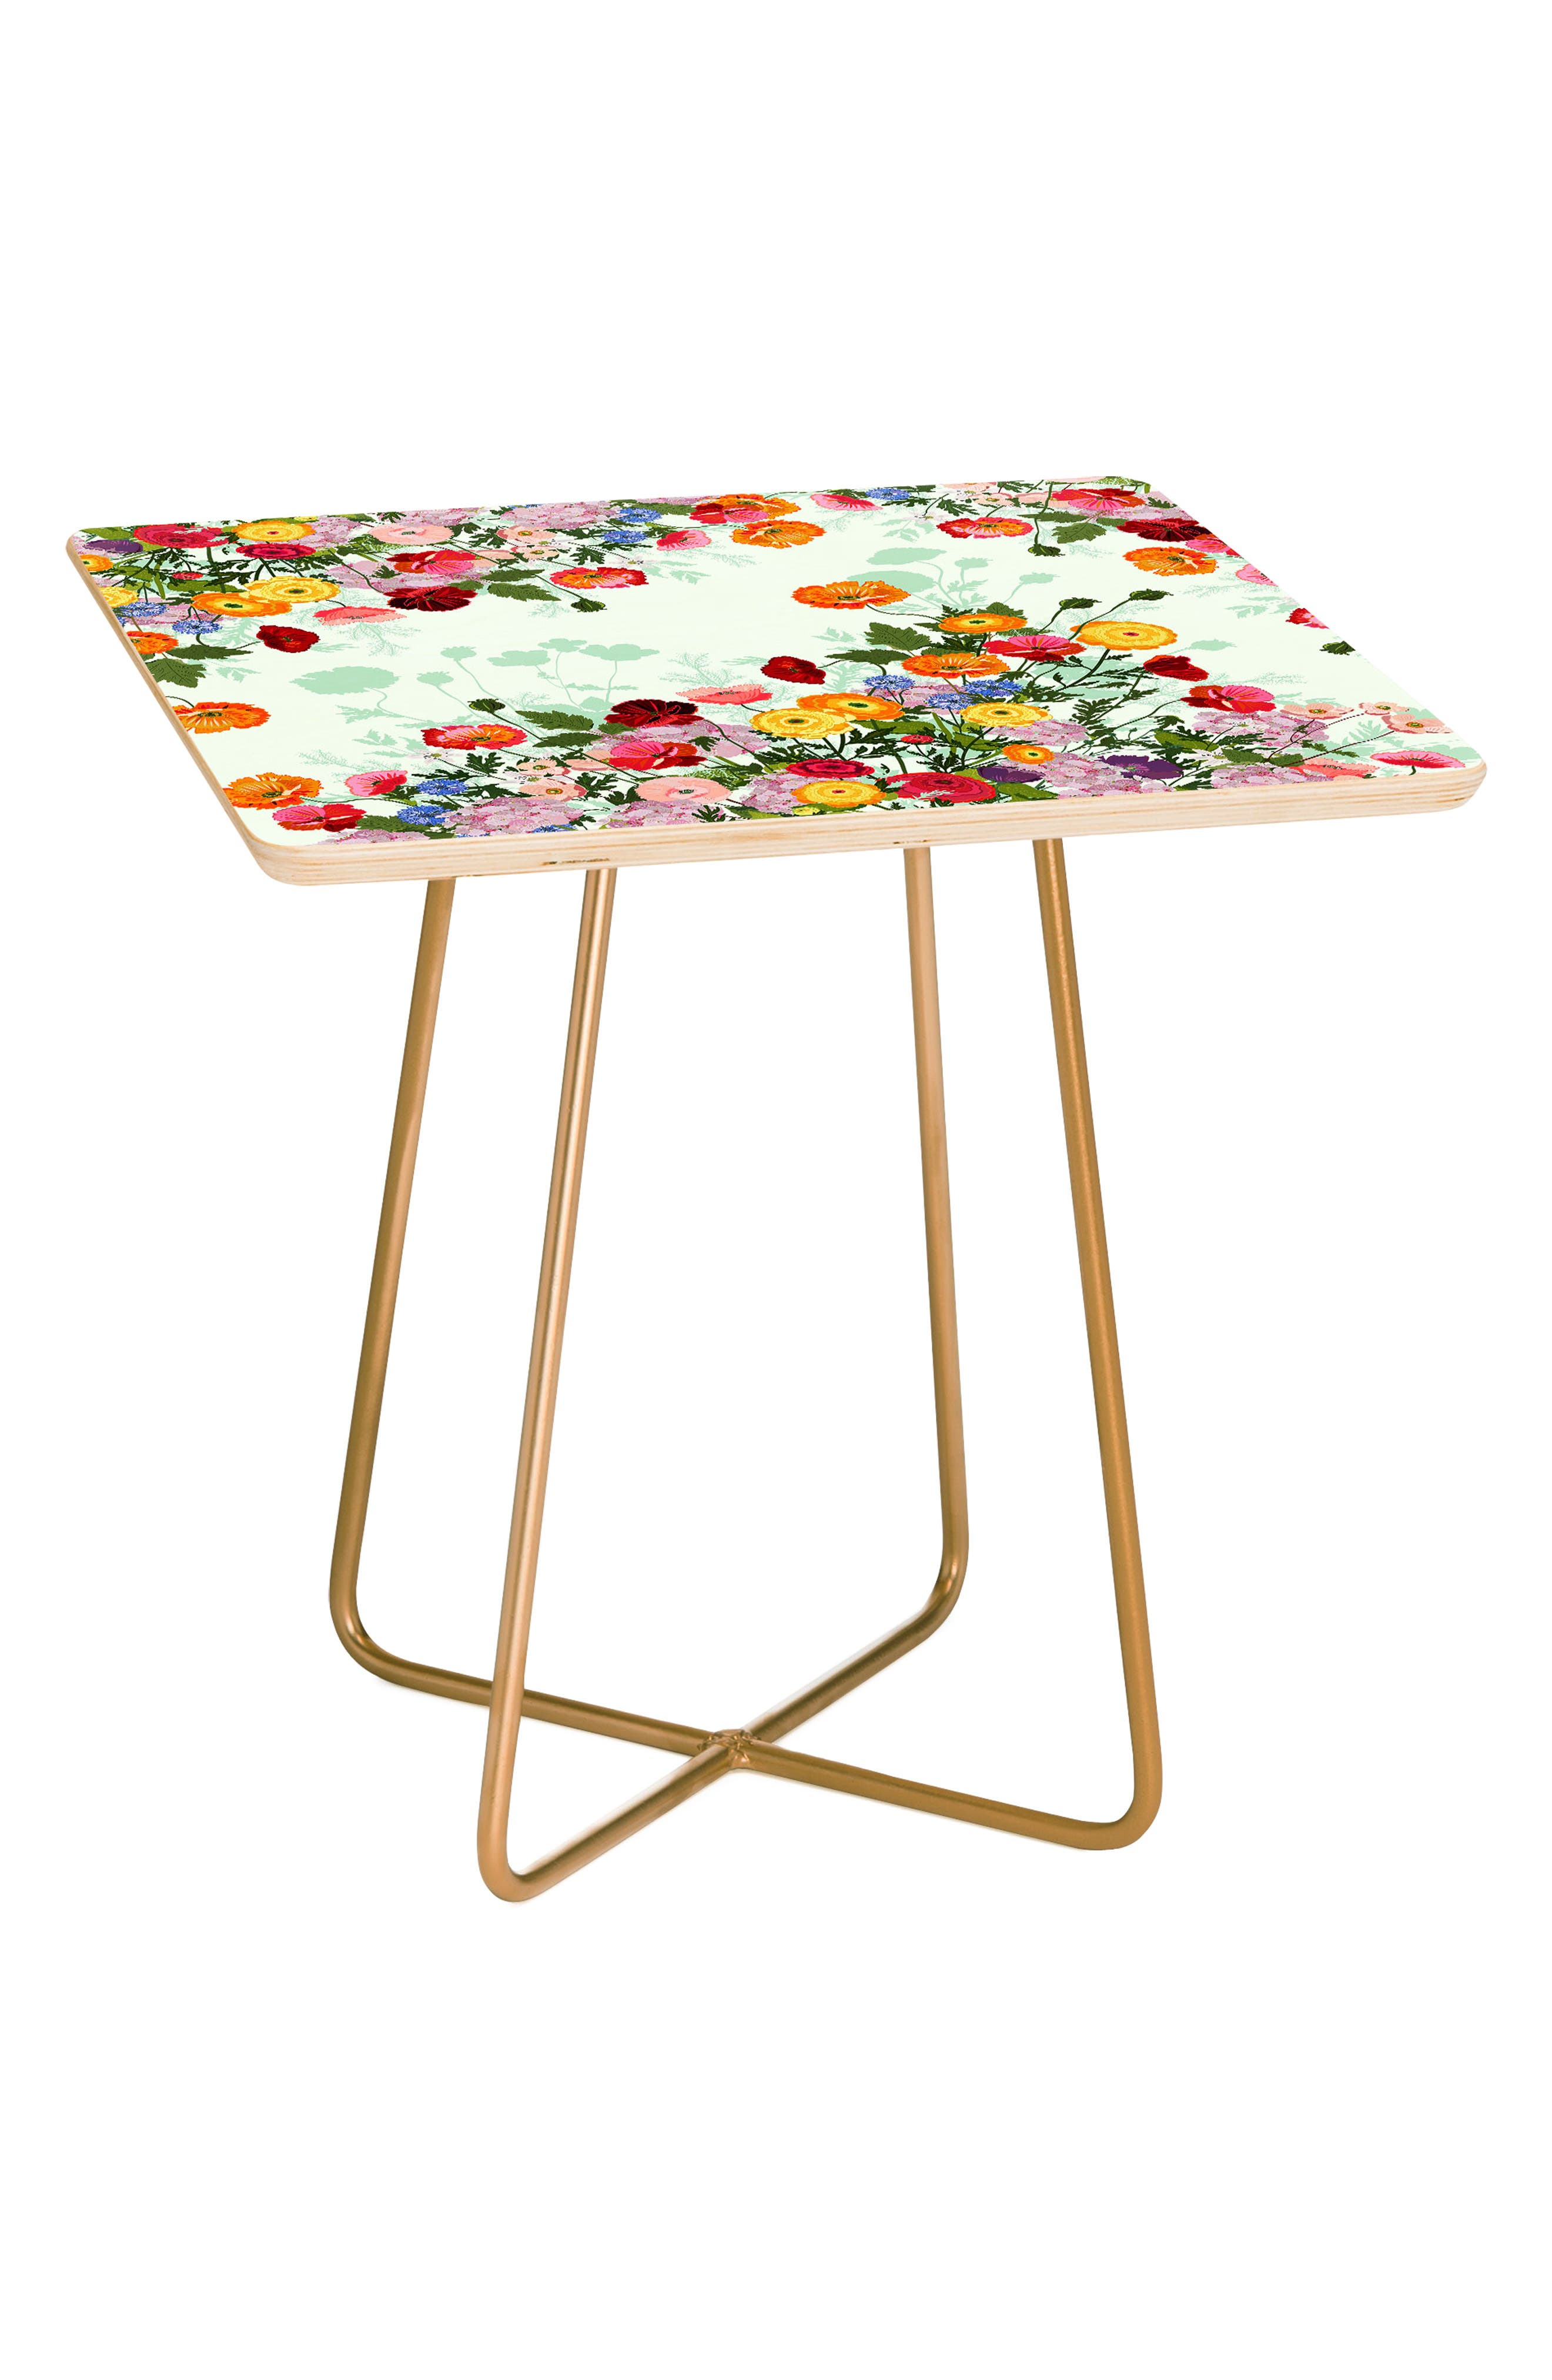 DENY DESIGNS,                             Emmaline Side Table,                             Main thumbnail 1, color,                             RED